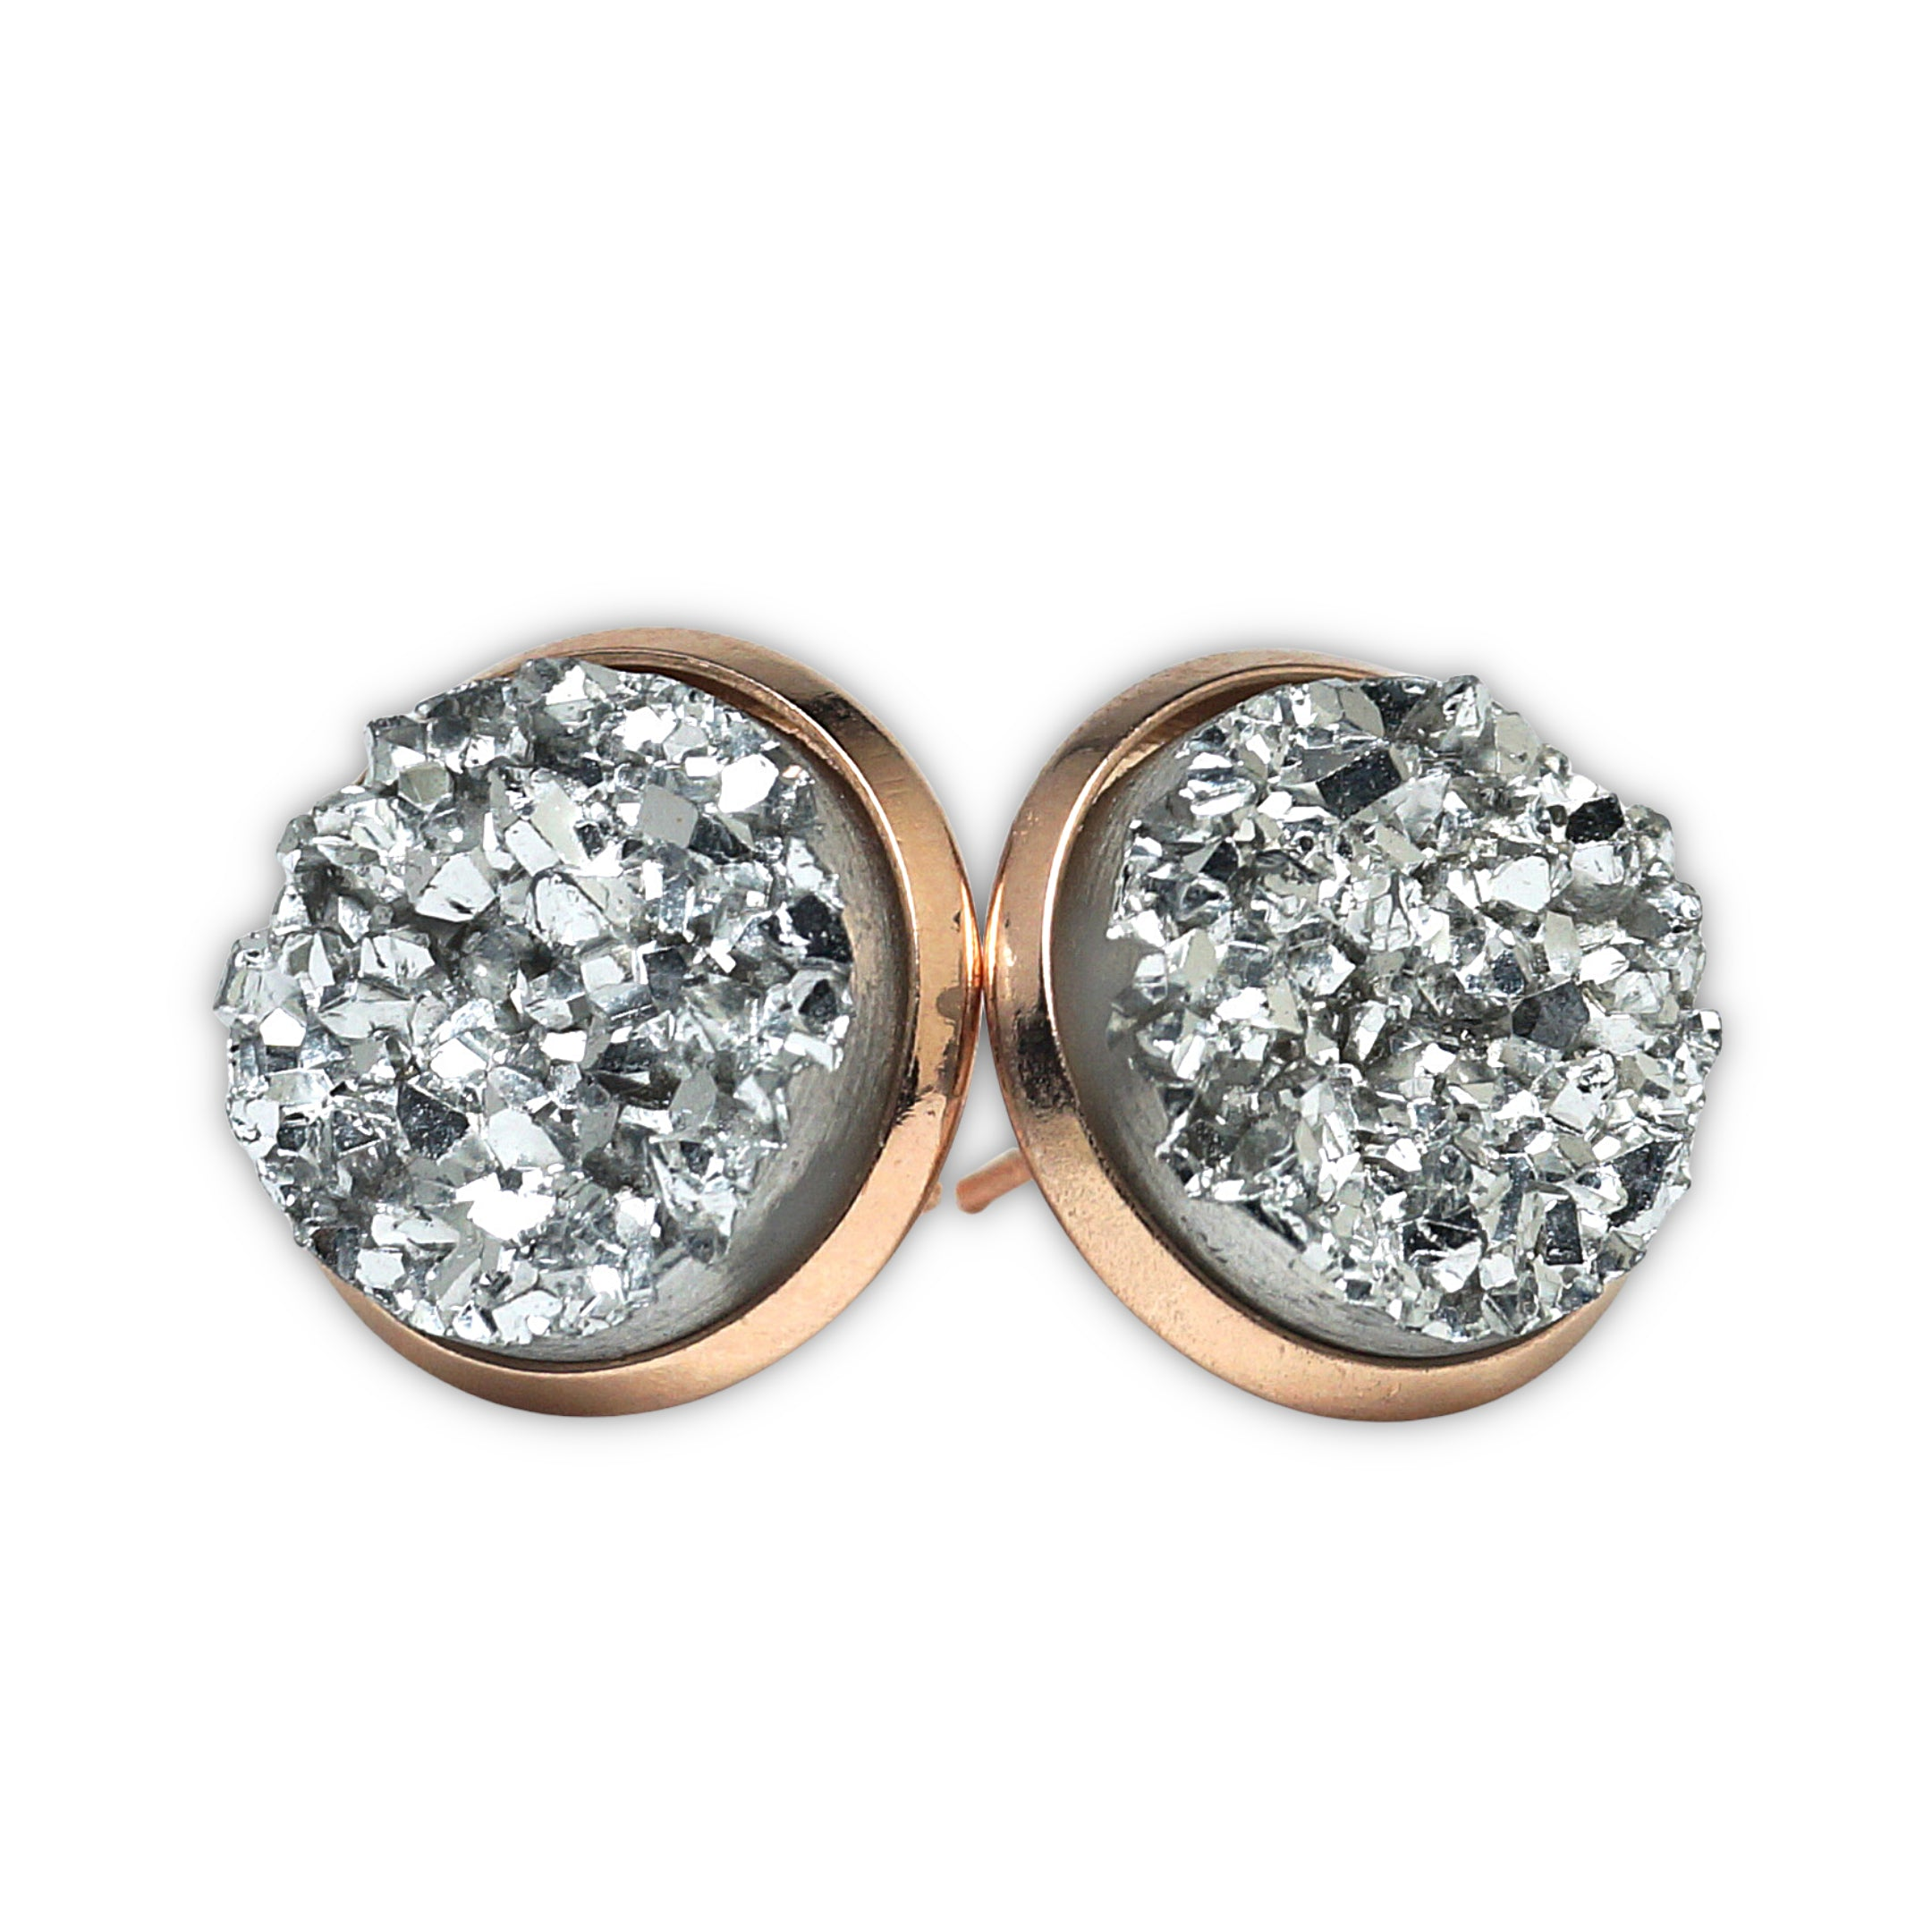 Silver Kite Druzy Stud Earrings (14mm)